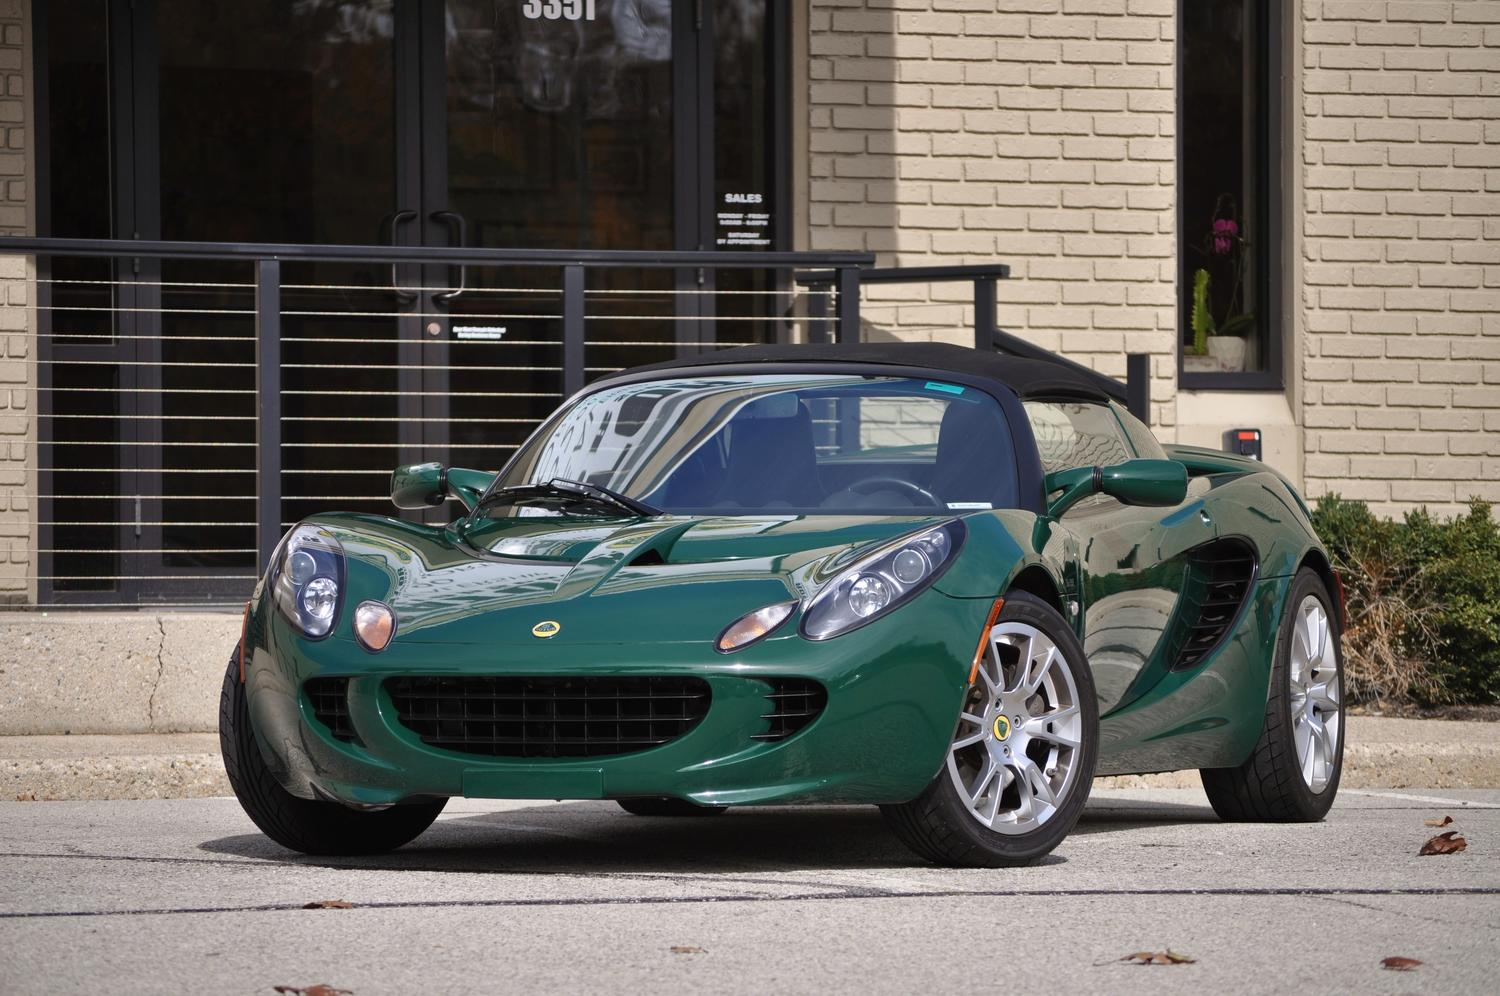 sold 2008 lotus elise s c british racing green black leather 11k miles thank you e h. Black Bedroom Furniture Sets. Home Design Ideas